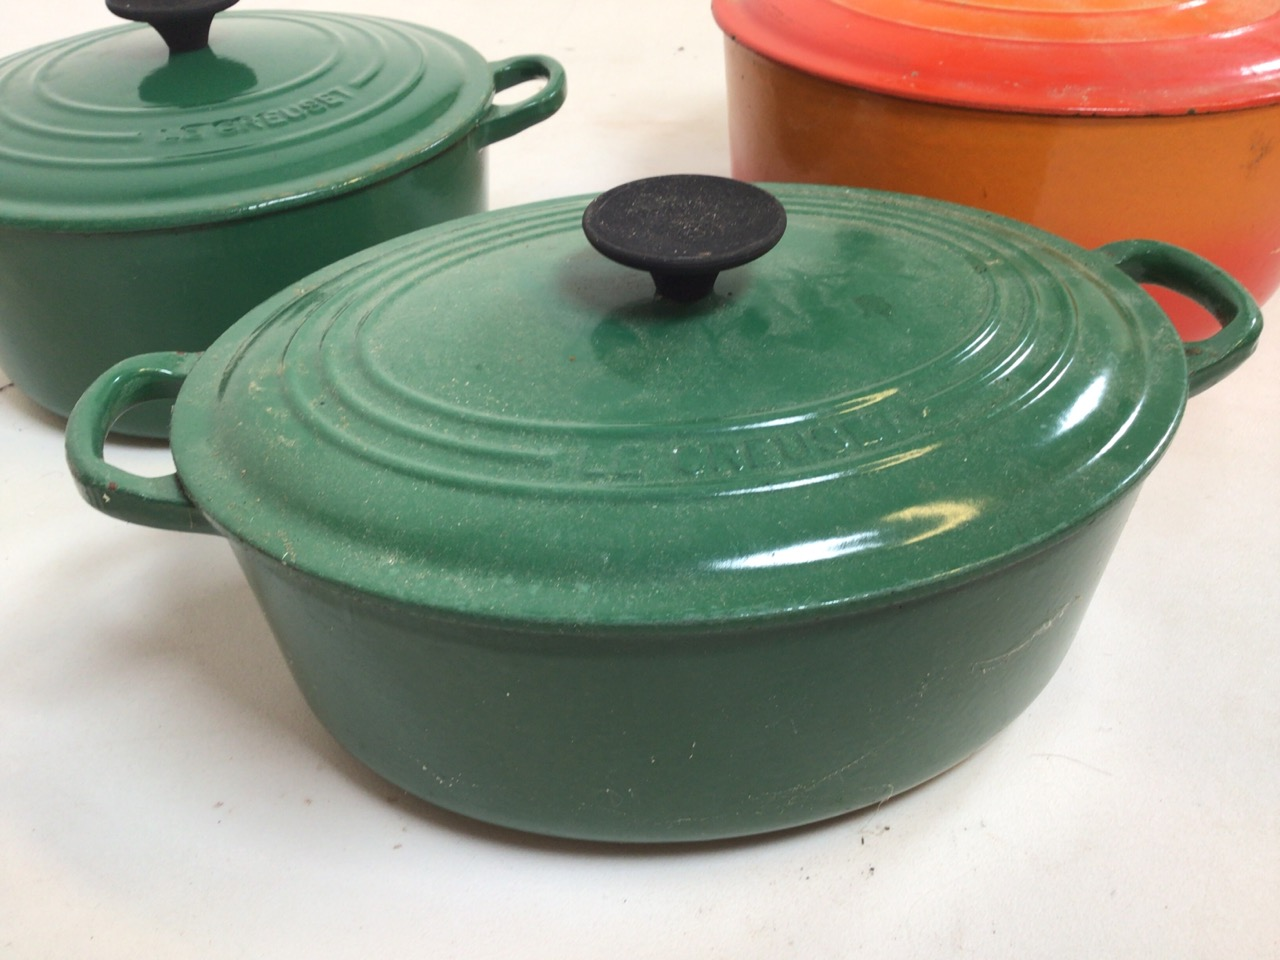 Le Creuset casserole dishes orange and green, Worcester blue and white plates also with a blue and - Image 5 of 7